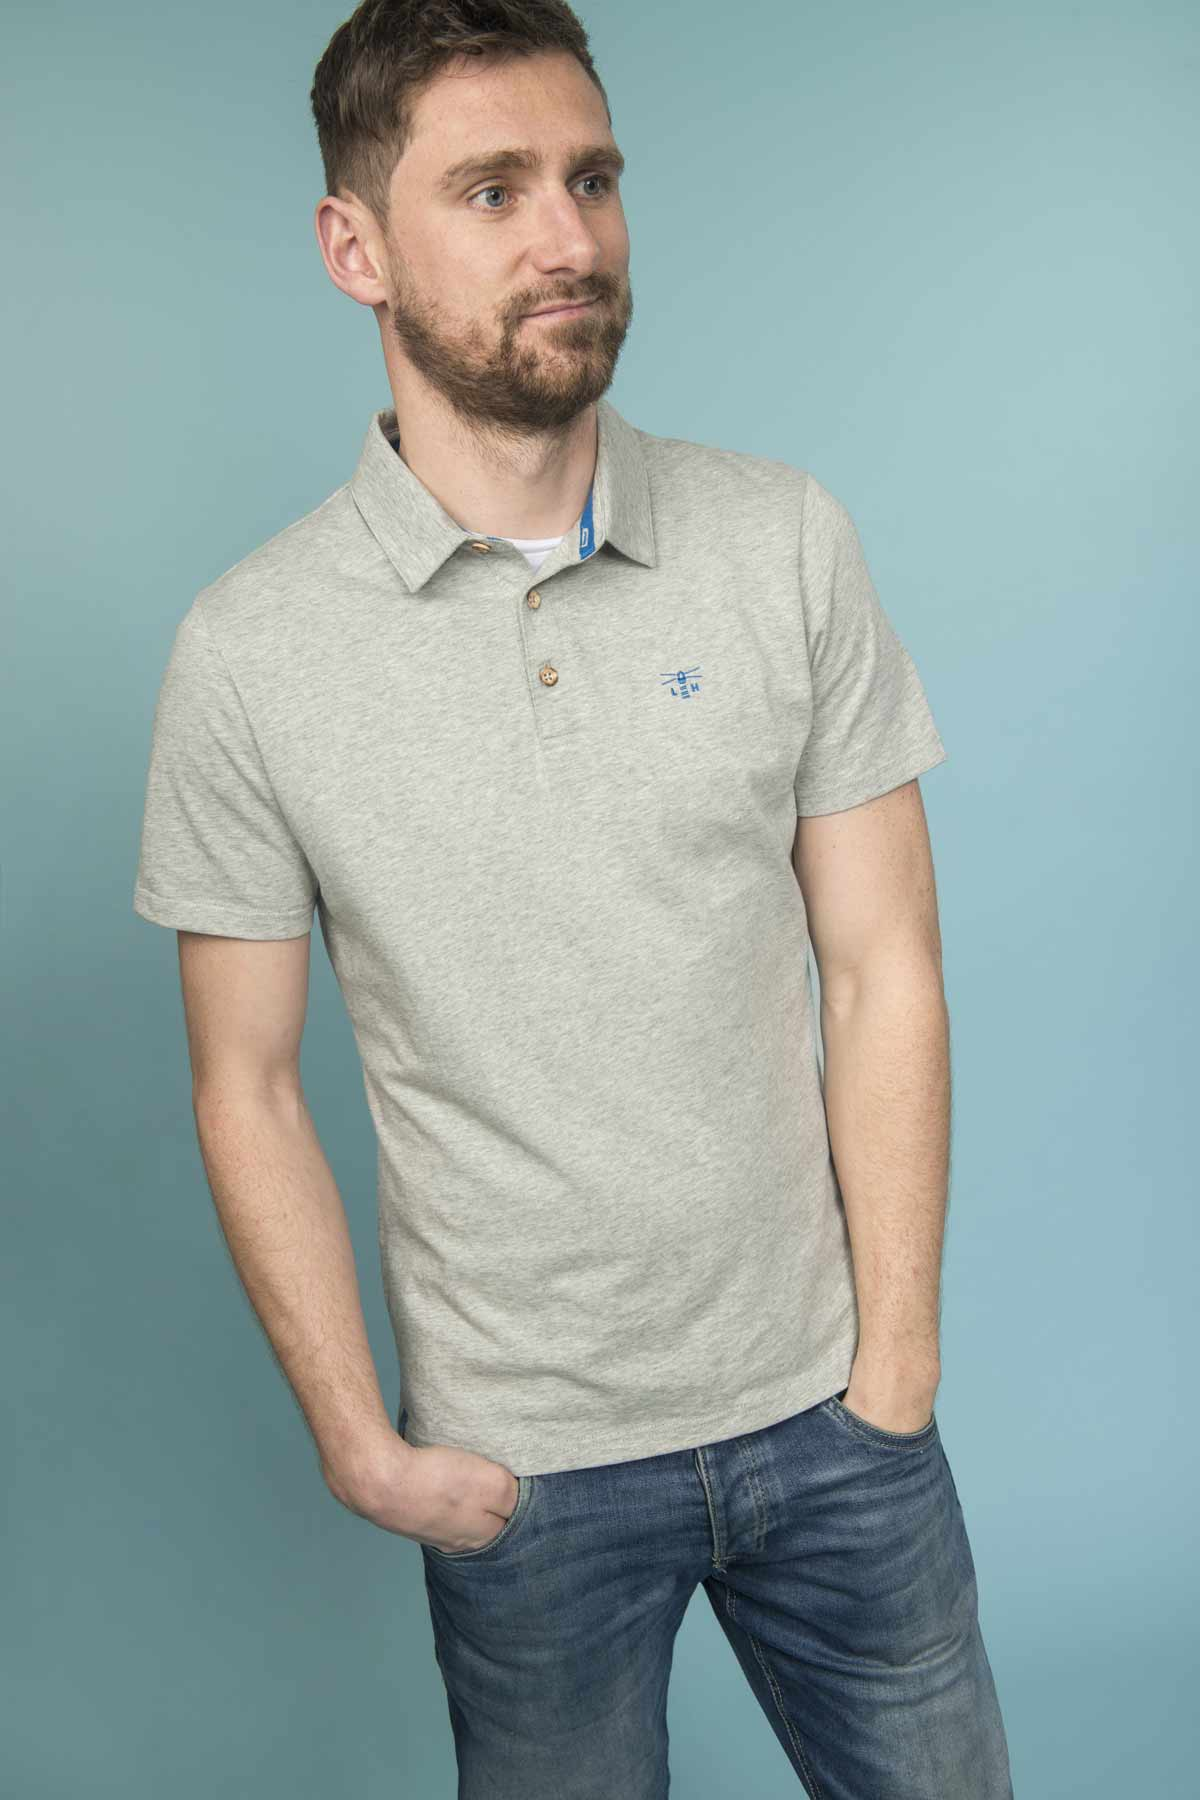 Lighthouse Pier Polo - Men's Classic Polo Shirt - Grey